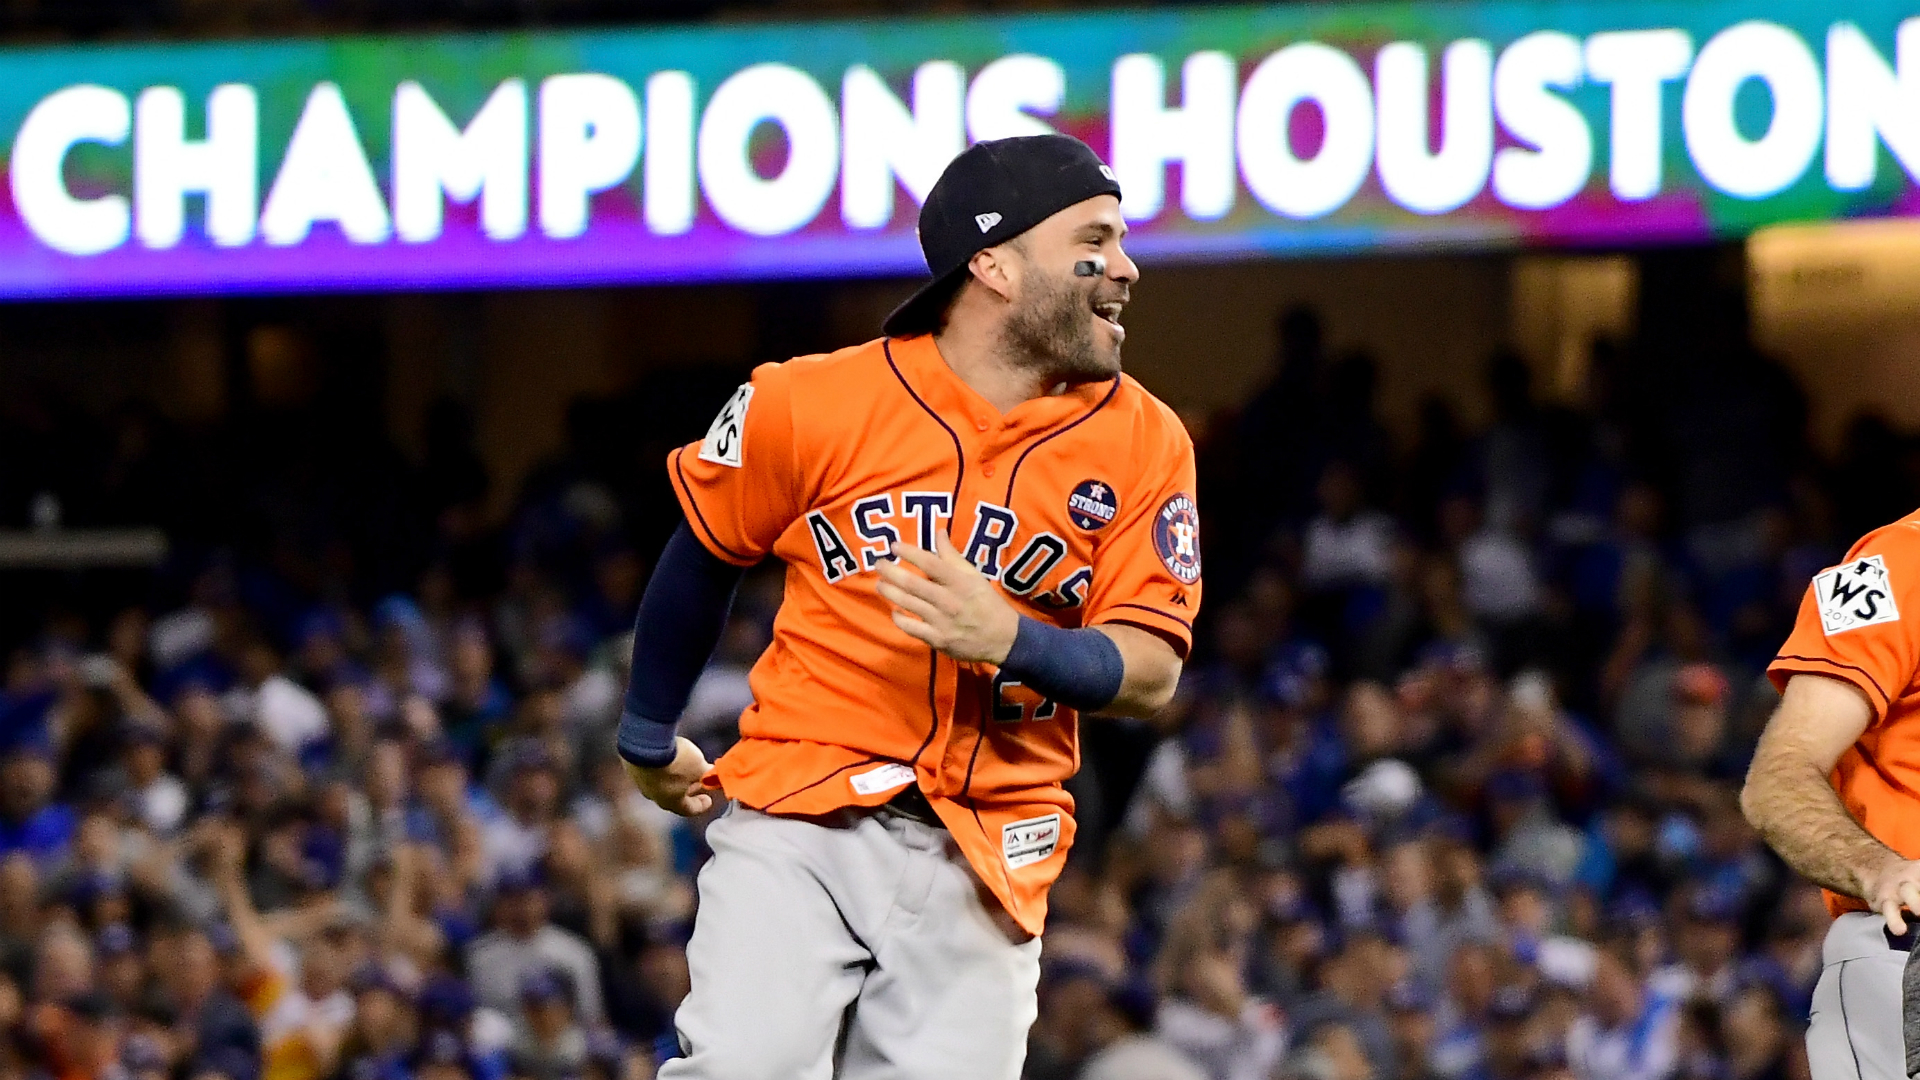 Altuve, Astros Agree To $151M, 5-Year Contract Extension